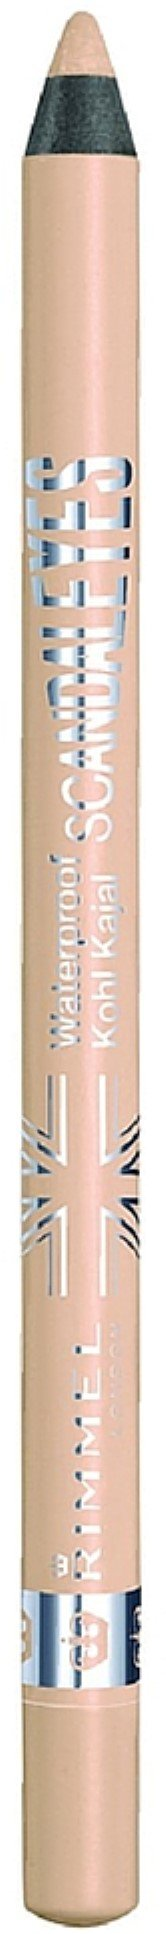 Rimmel London Scandal Eyes Waterproof Kohl Kajal Eyeliner, Nude 0.04 oz (Pack of 11)